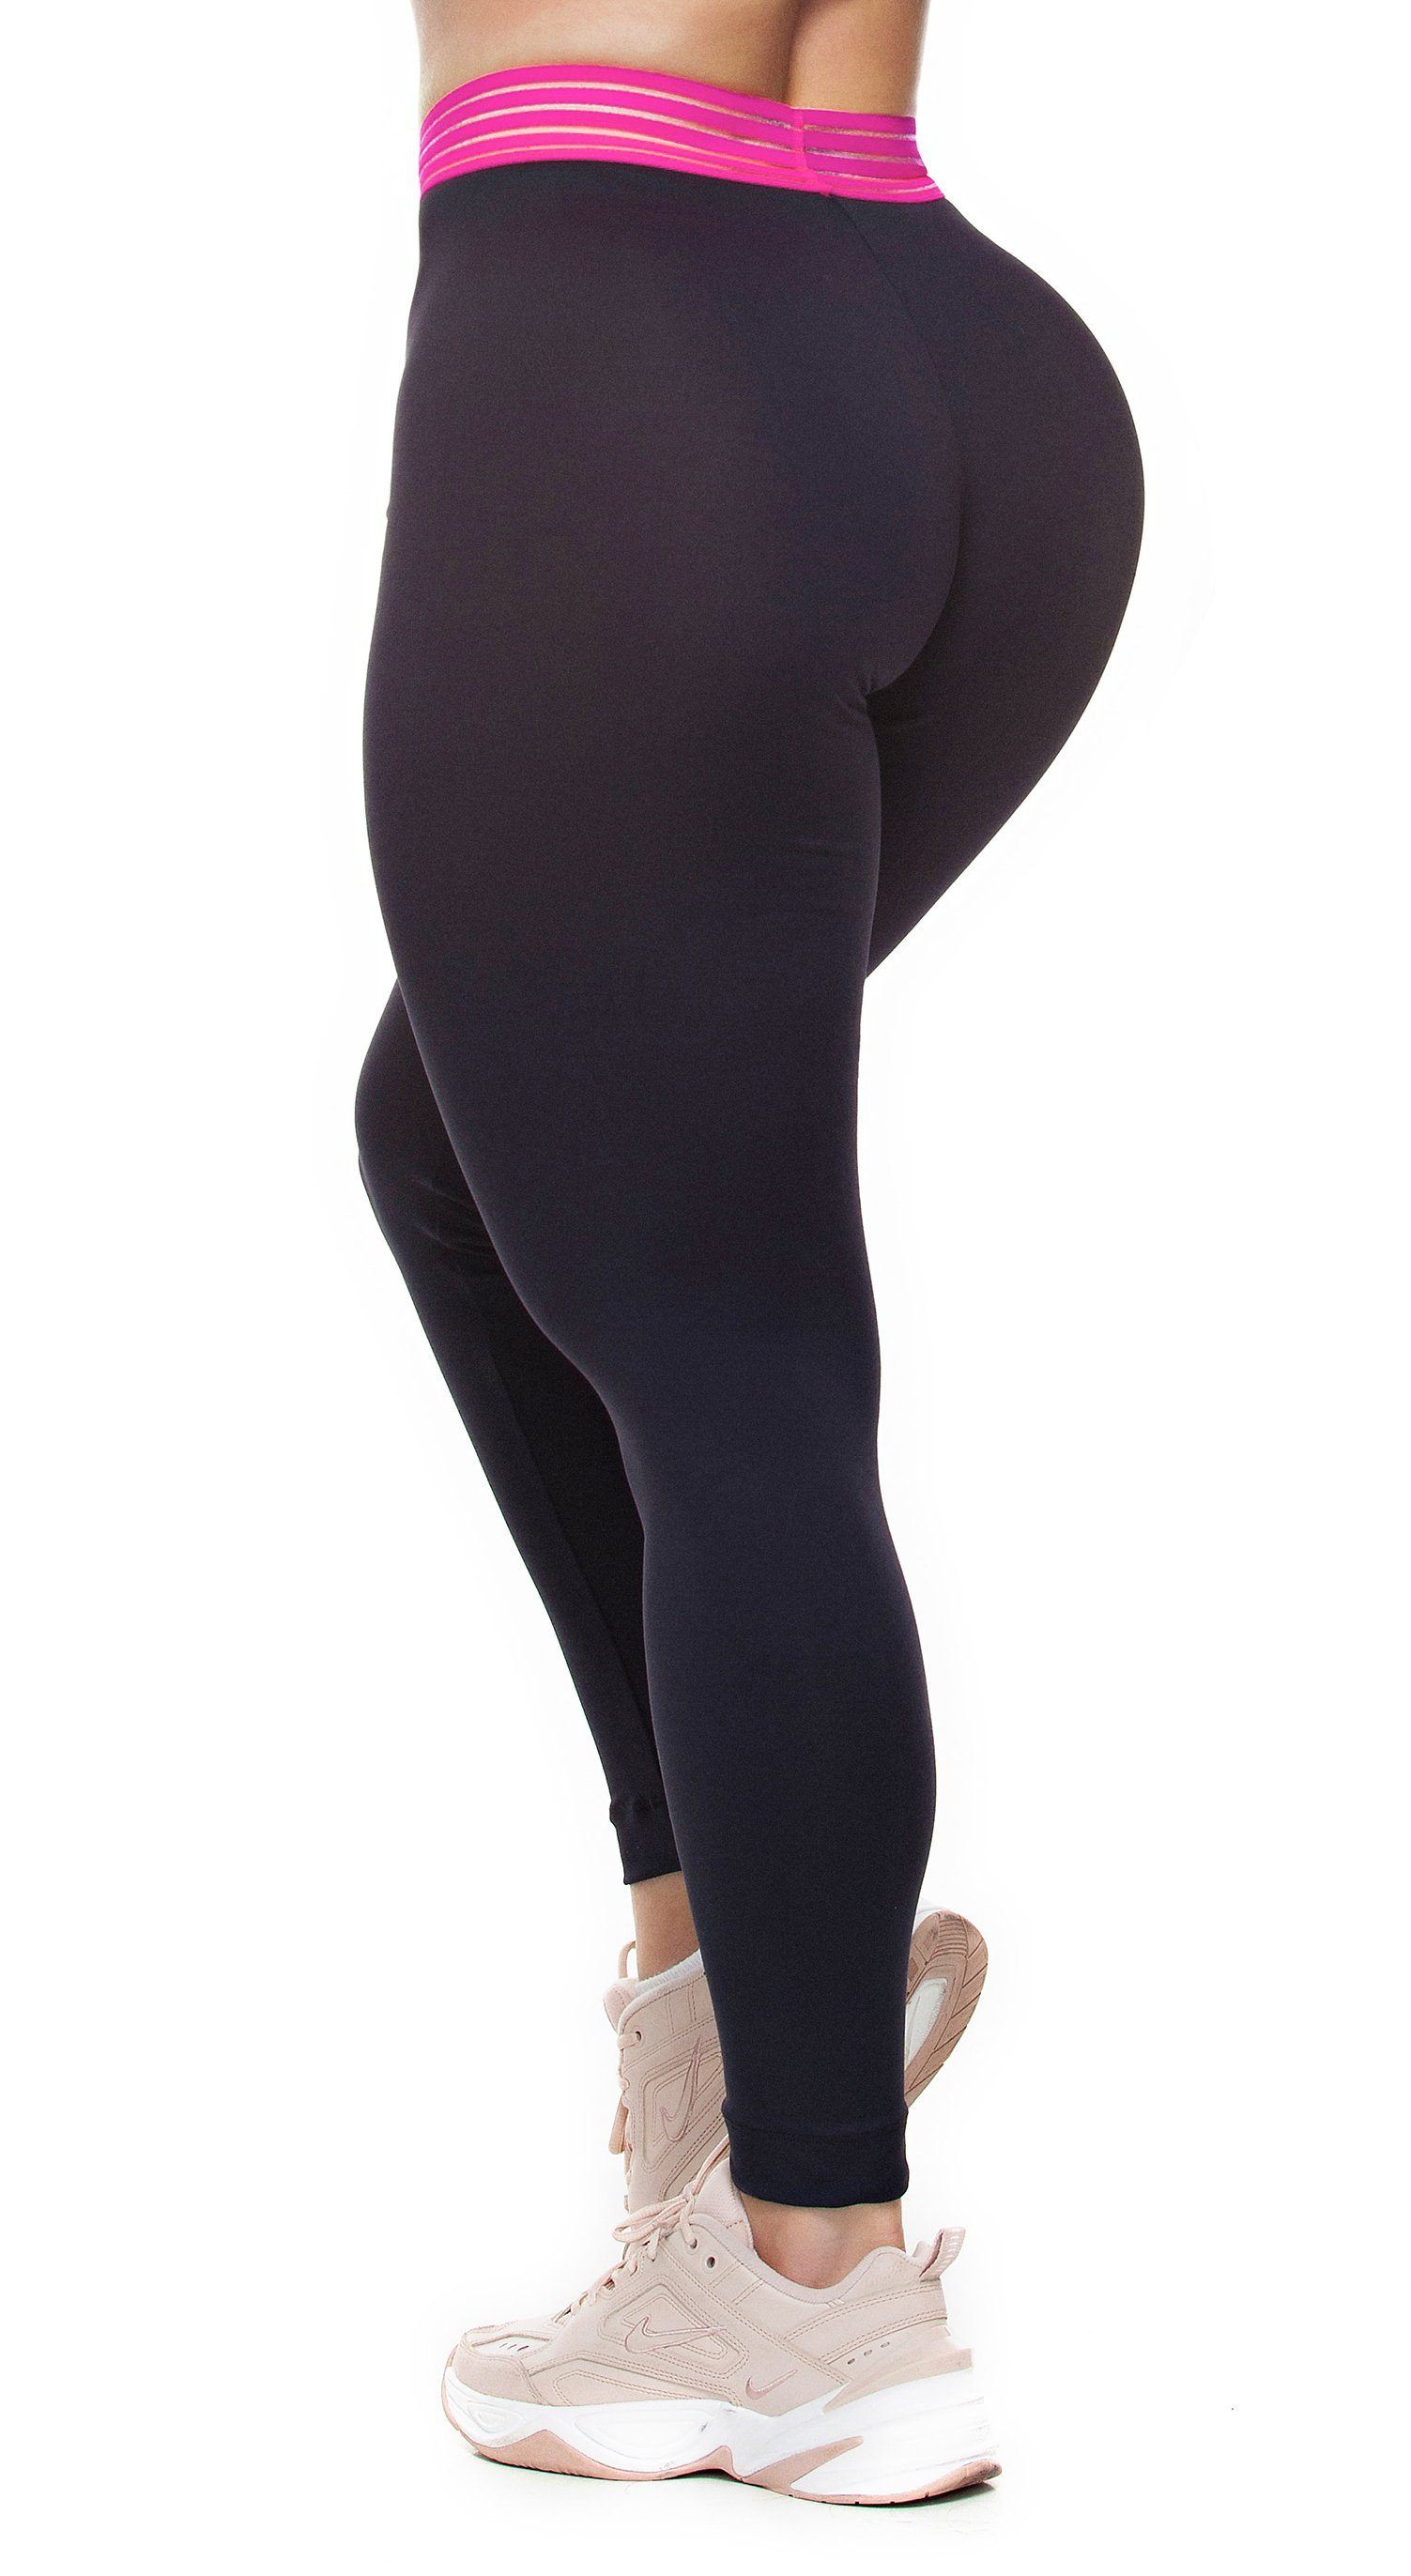 Brazilian Workout Leggings - Fusion Black & Hot Pink